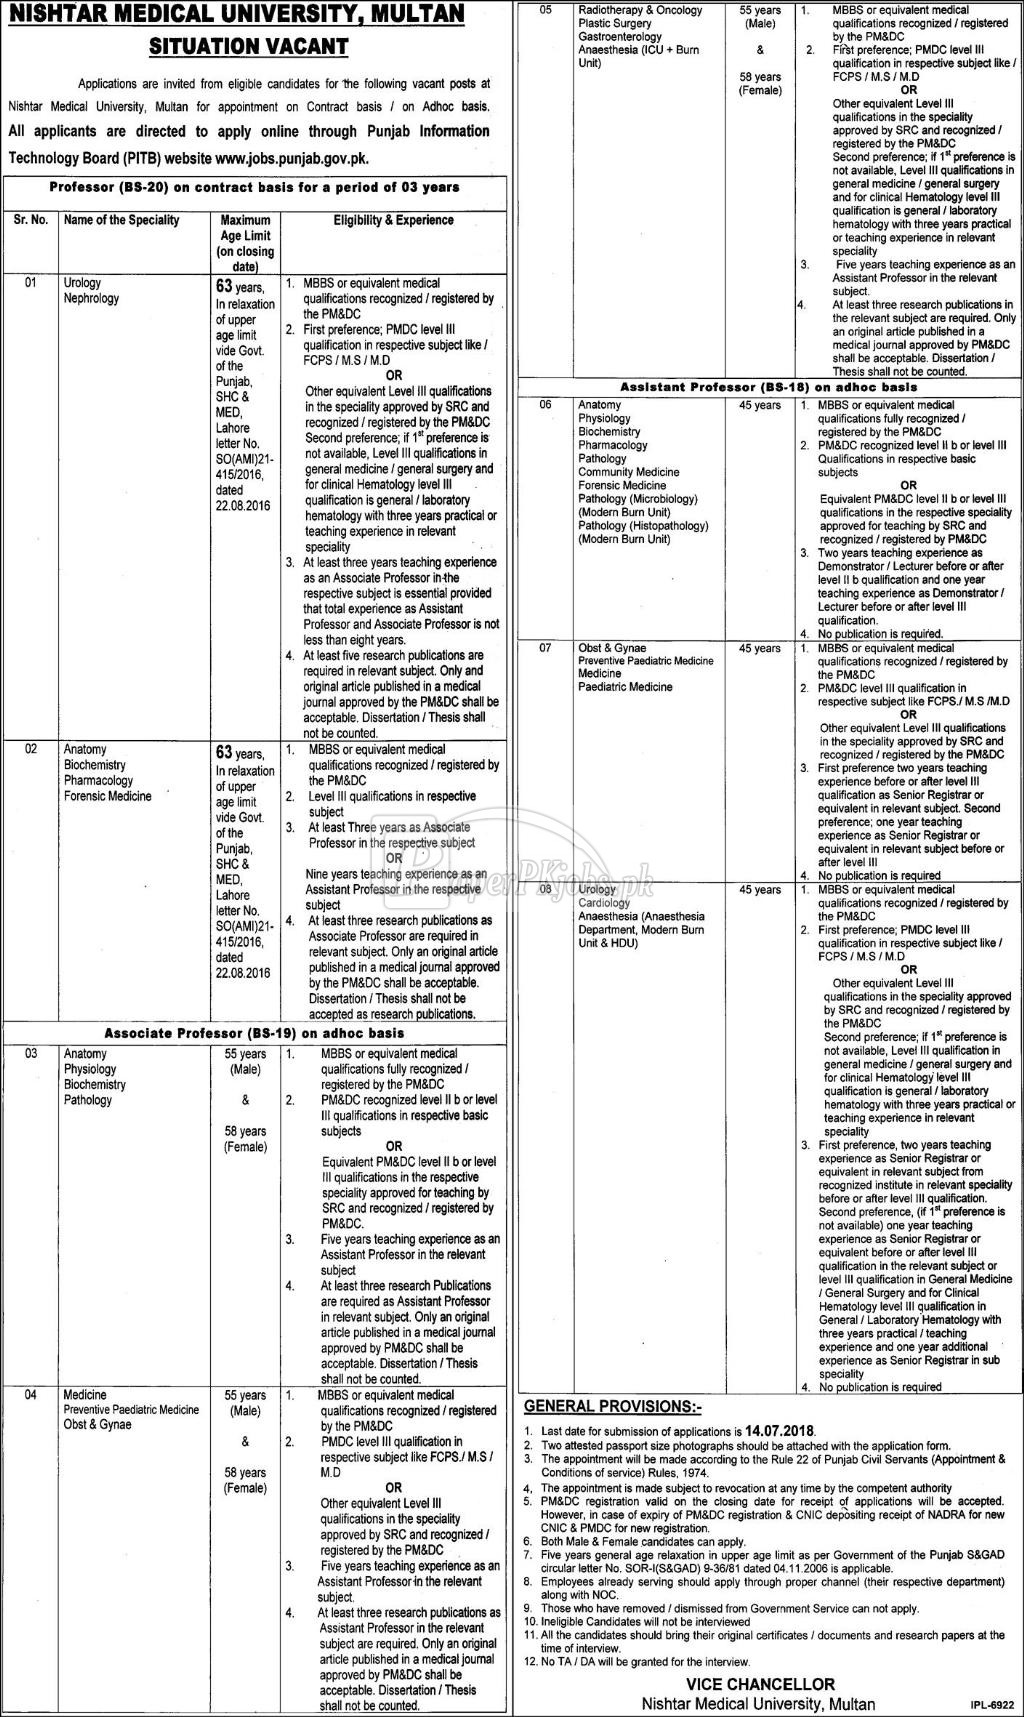 Nishtar Medical University Multan Jobs 2018